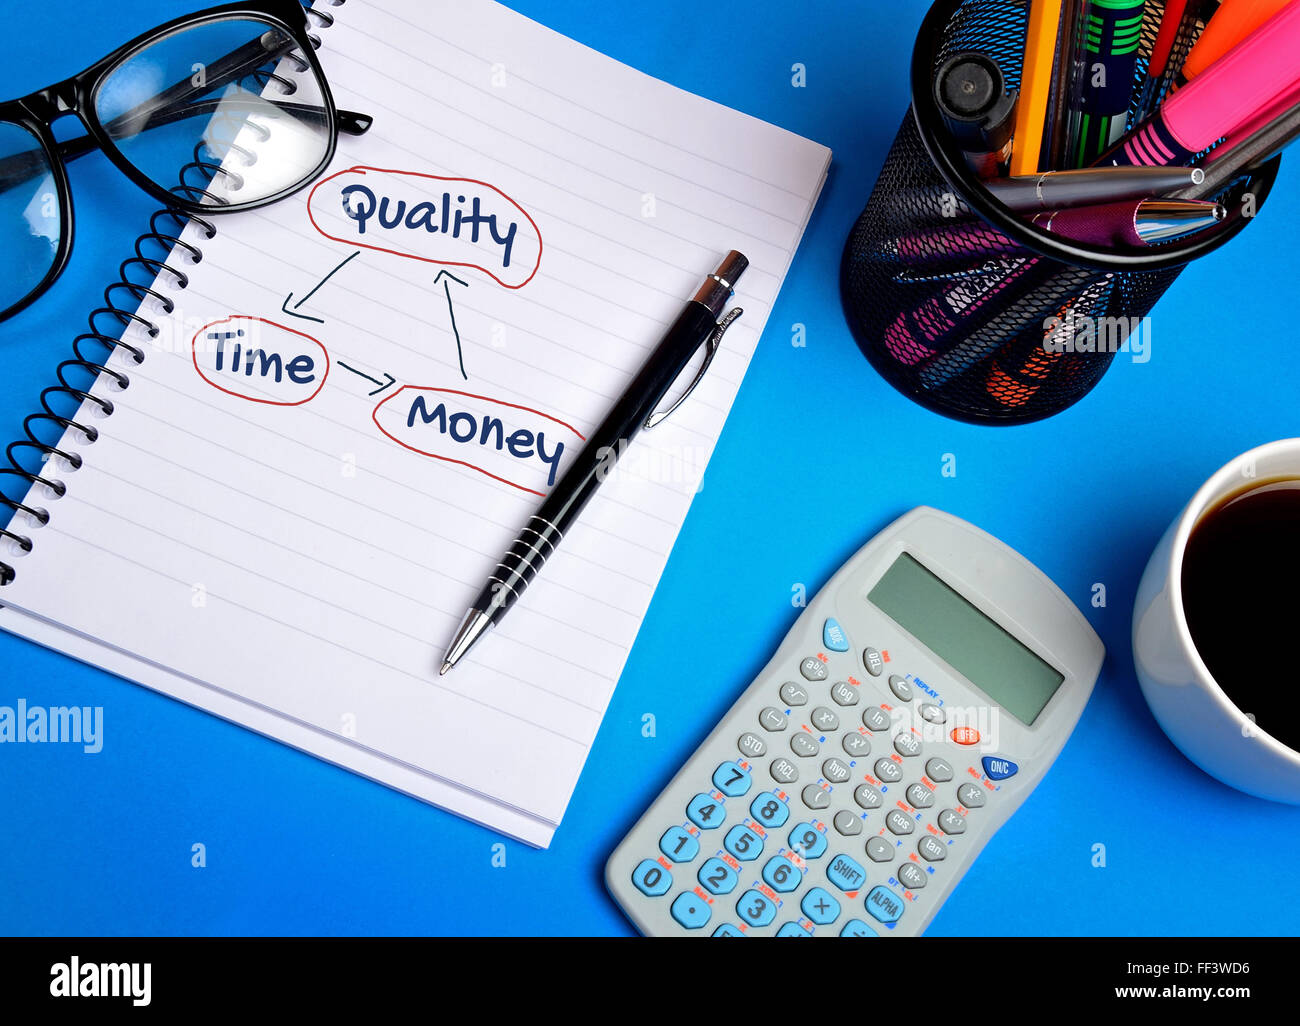 Quality Time Money word on notepad - Stock Image